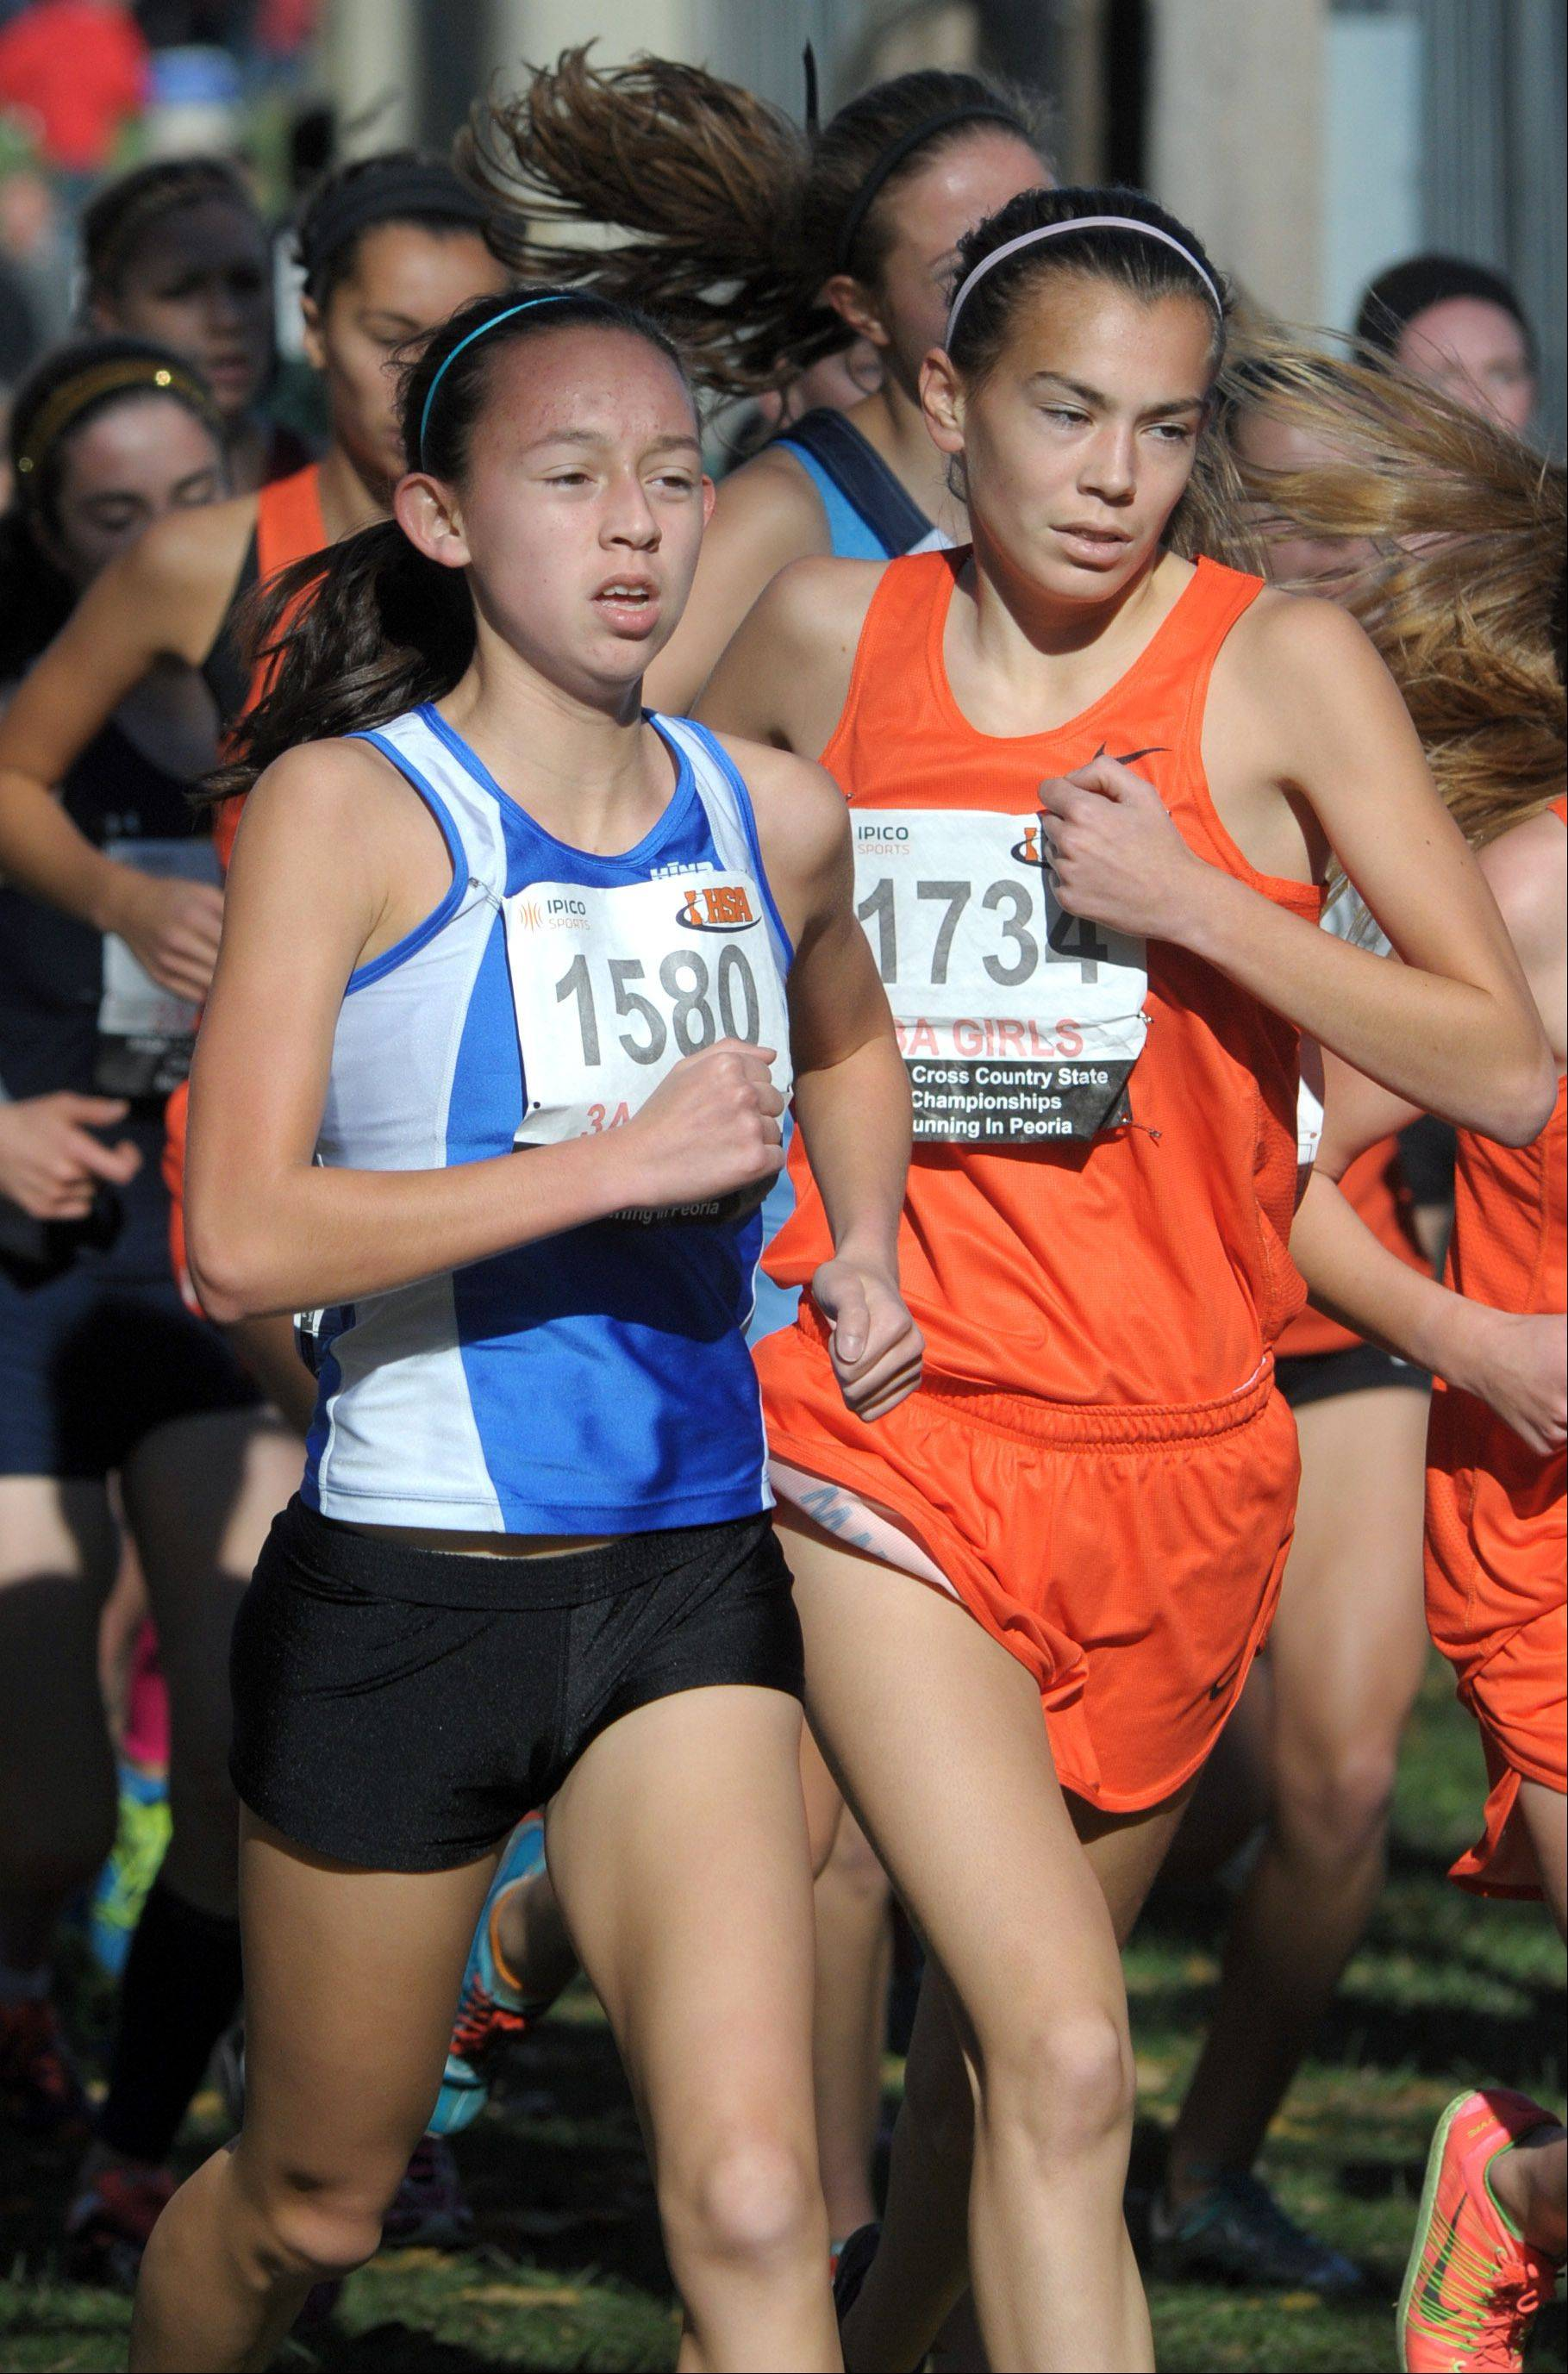 Lake Zurich's Kristie Houghton (1580) and Wheaton Warrenville South's Natalia Boettcher (7134) compete in the Class 3A cross country state finals at Detweiller Park in Peoria on Saturday.